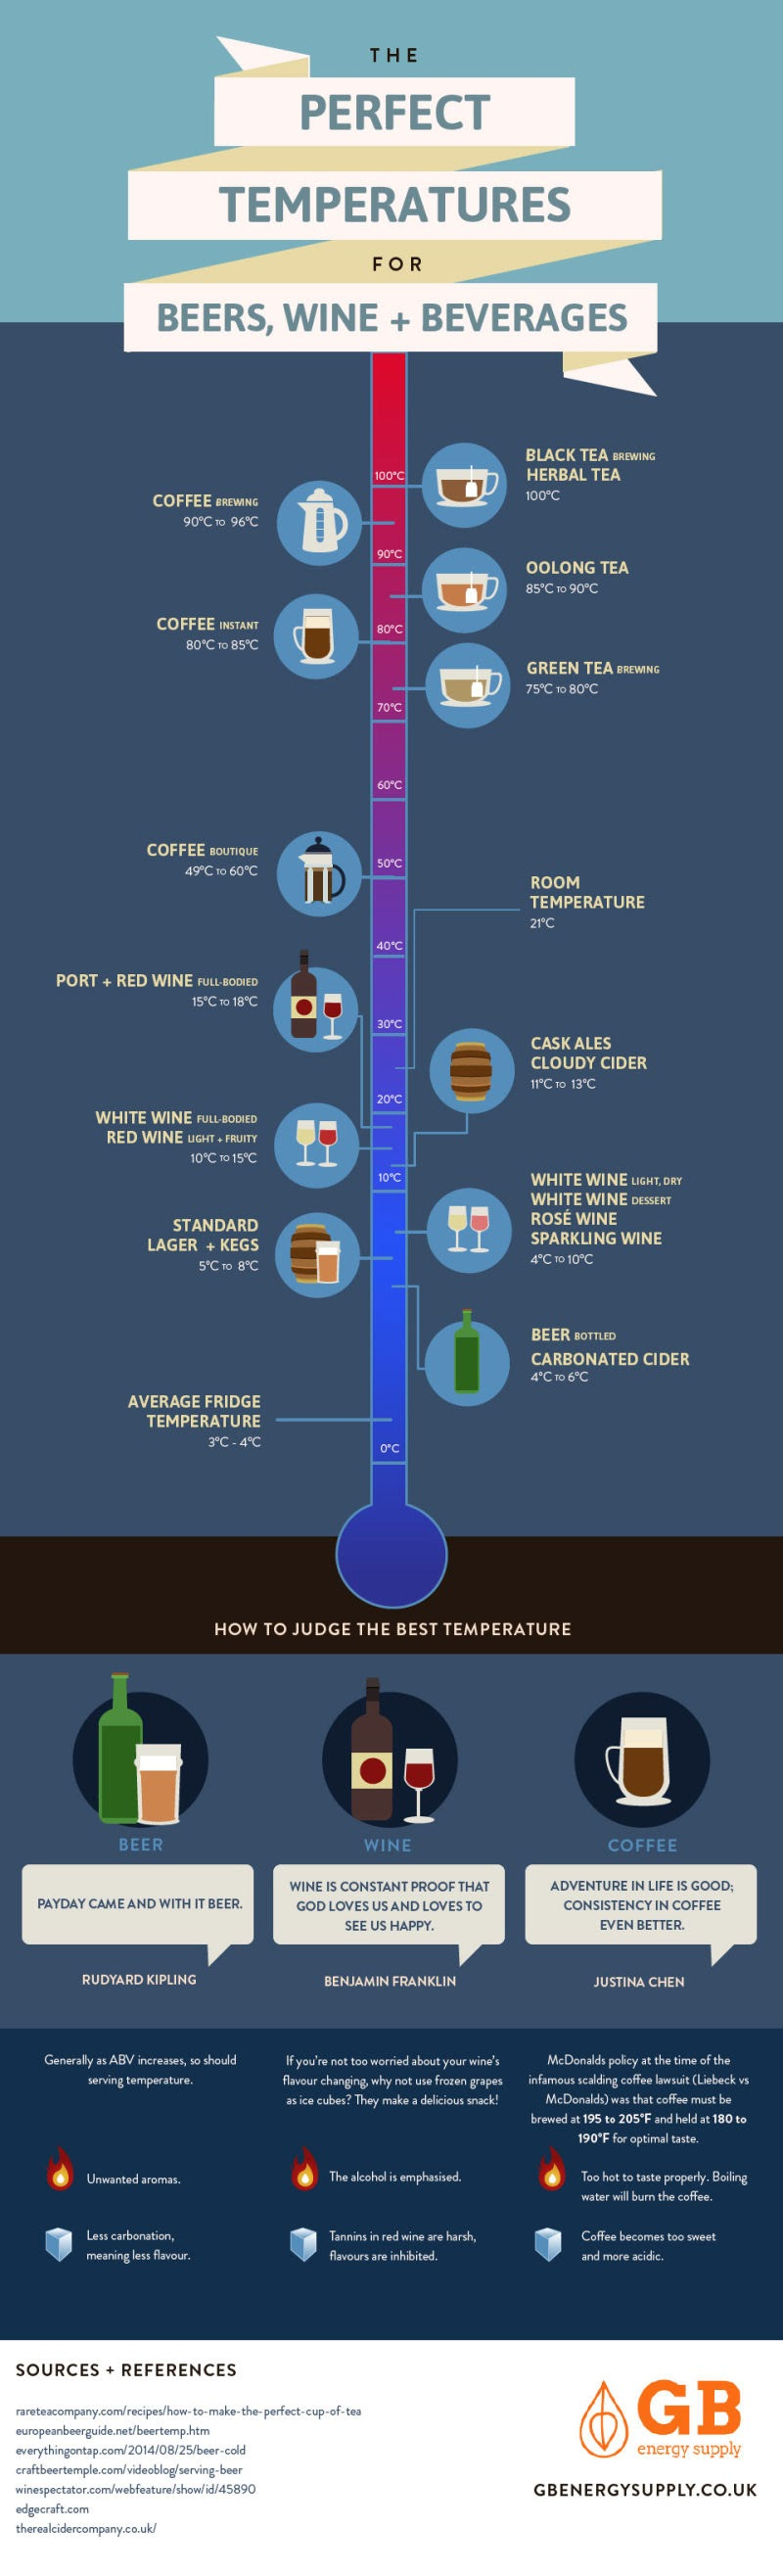 The Perfect Temperatures for Beer, Wine, and Beverages #infographic